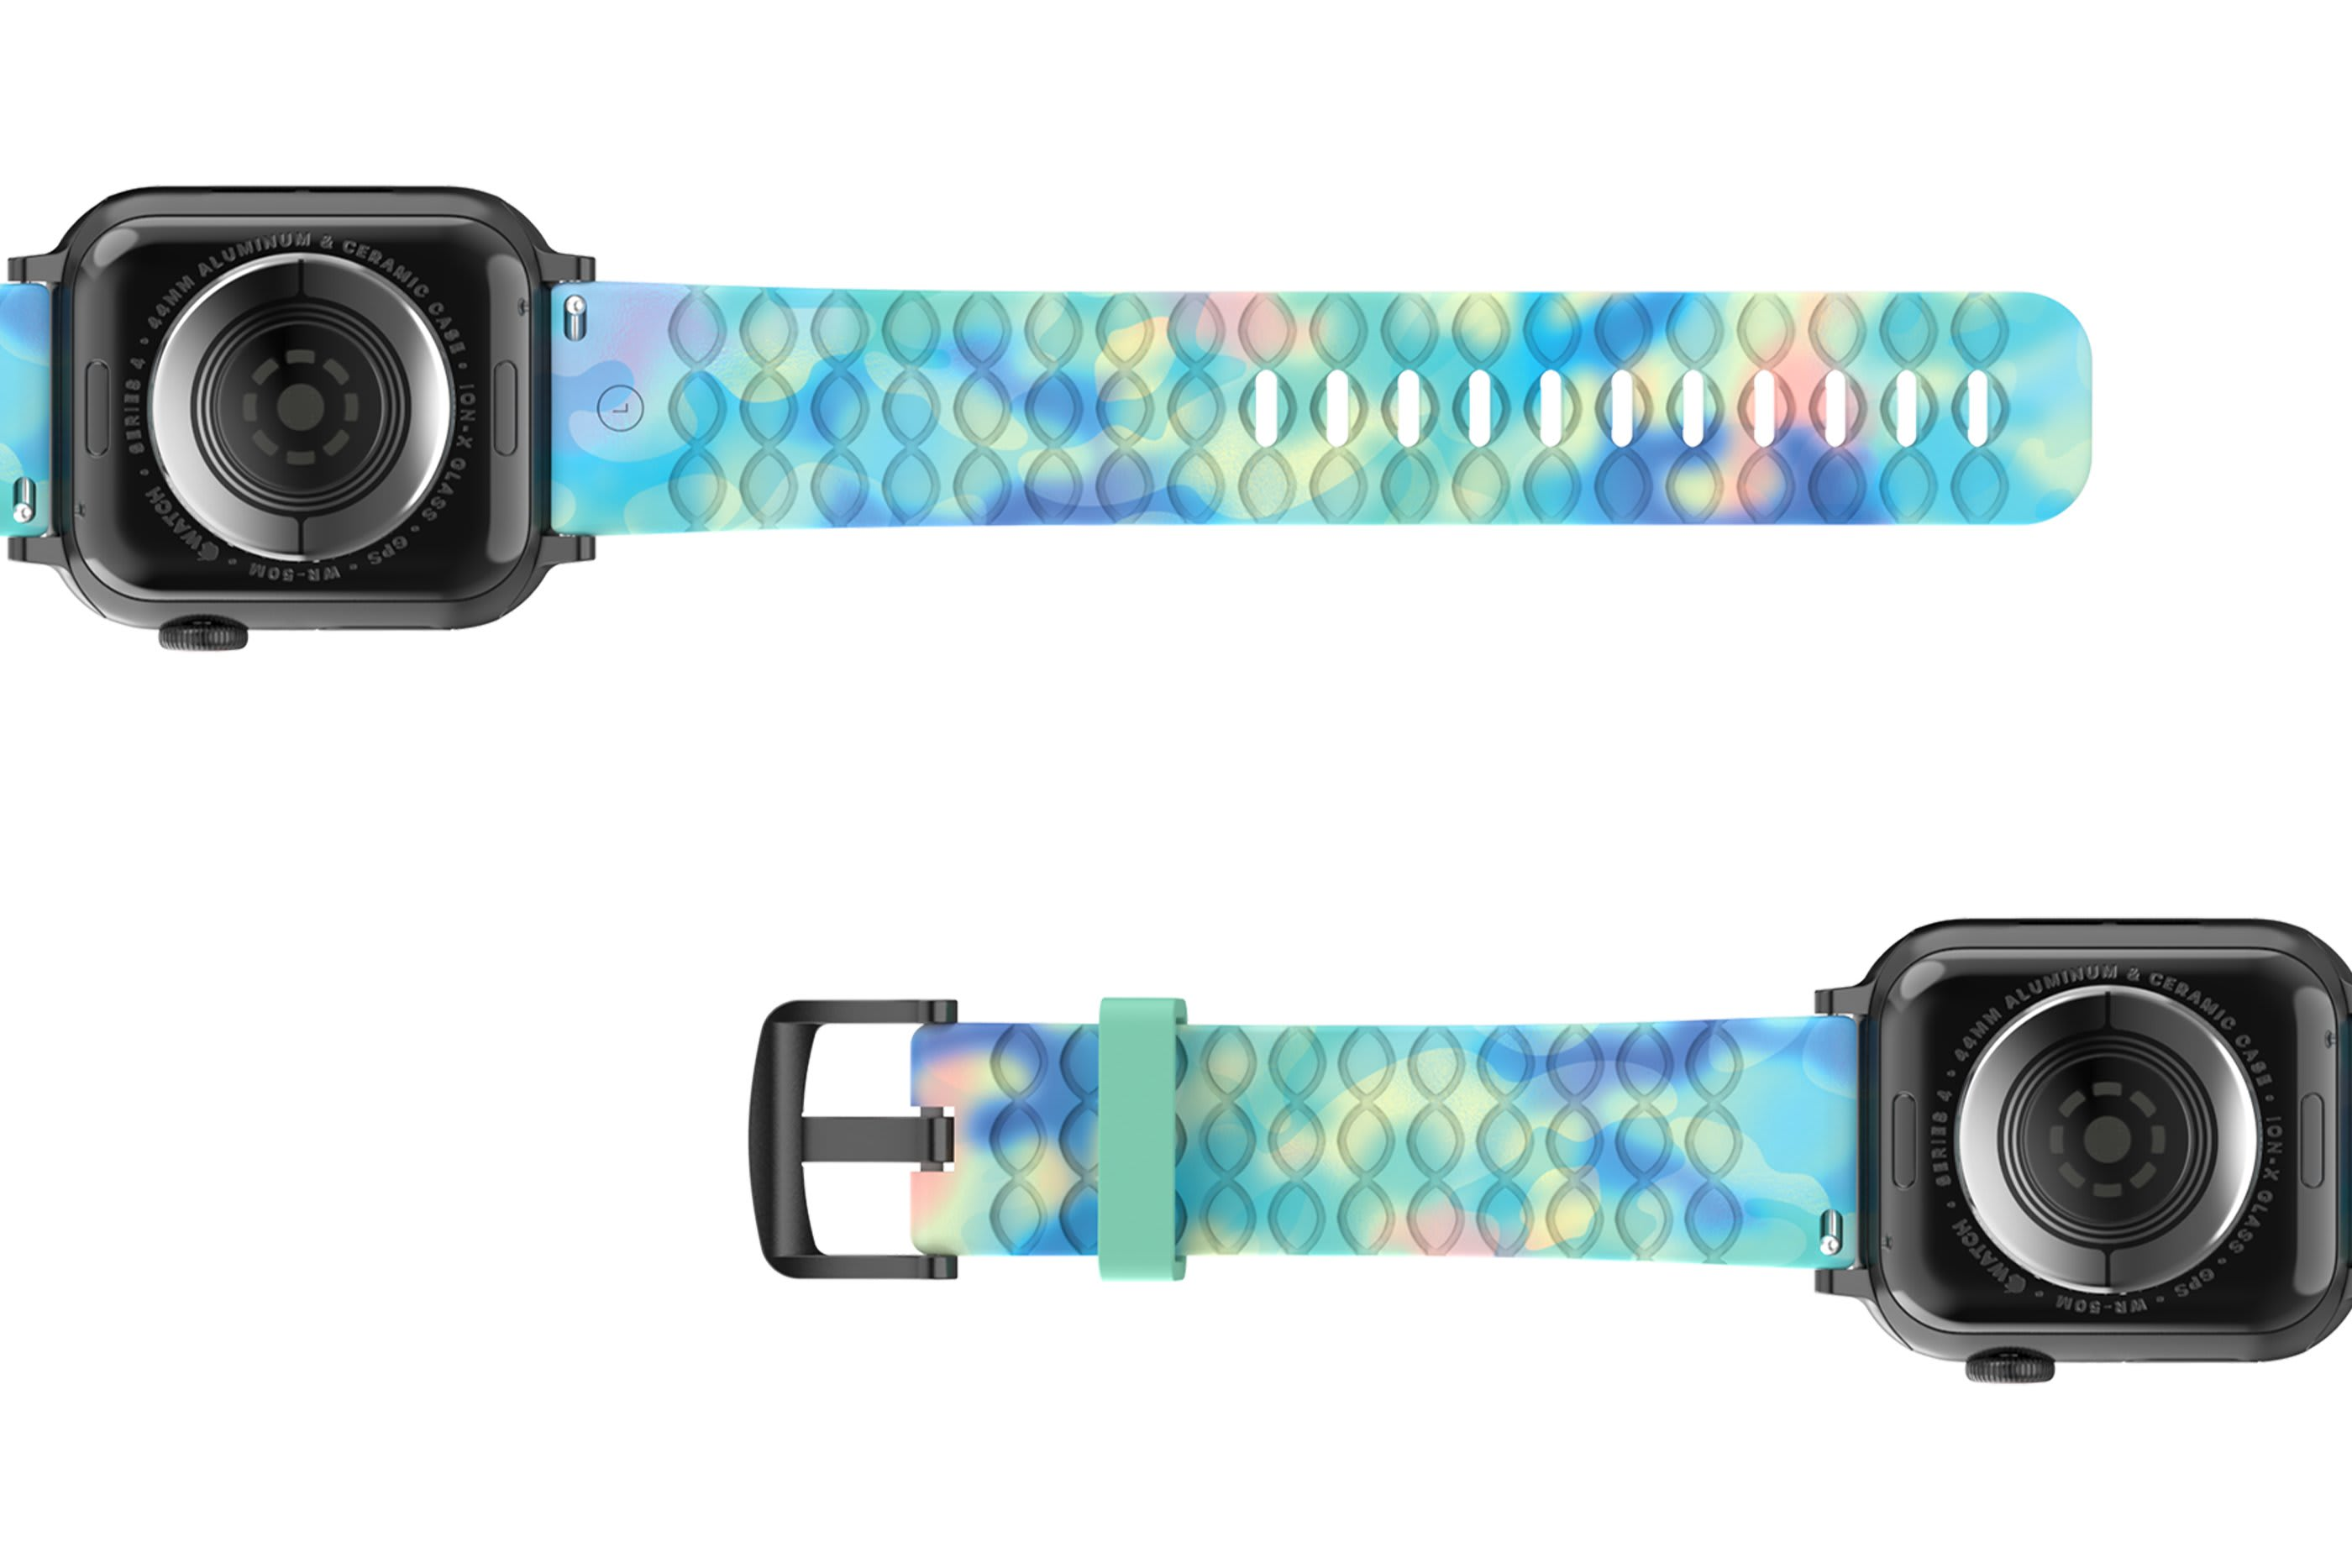 Opal - Apple   watch band with gray hardware viewed bottom up